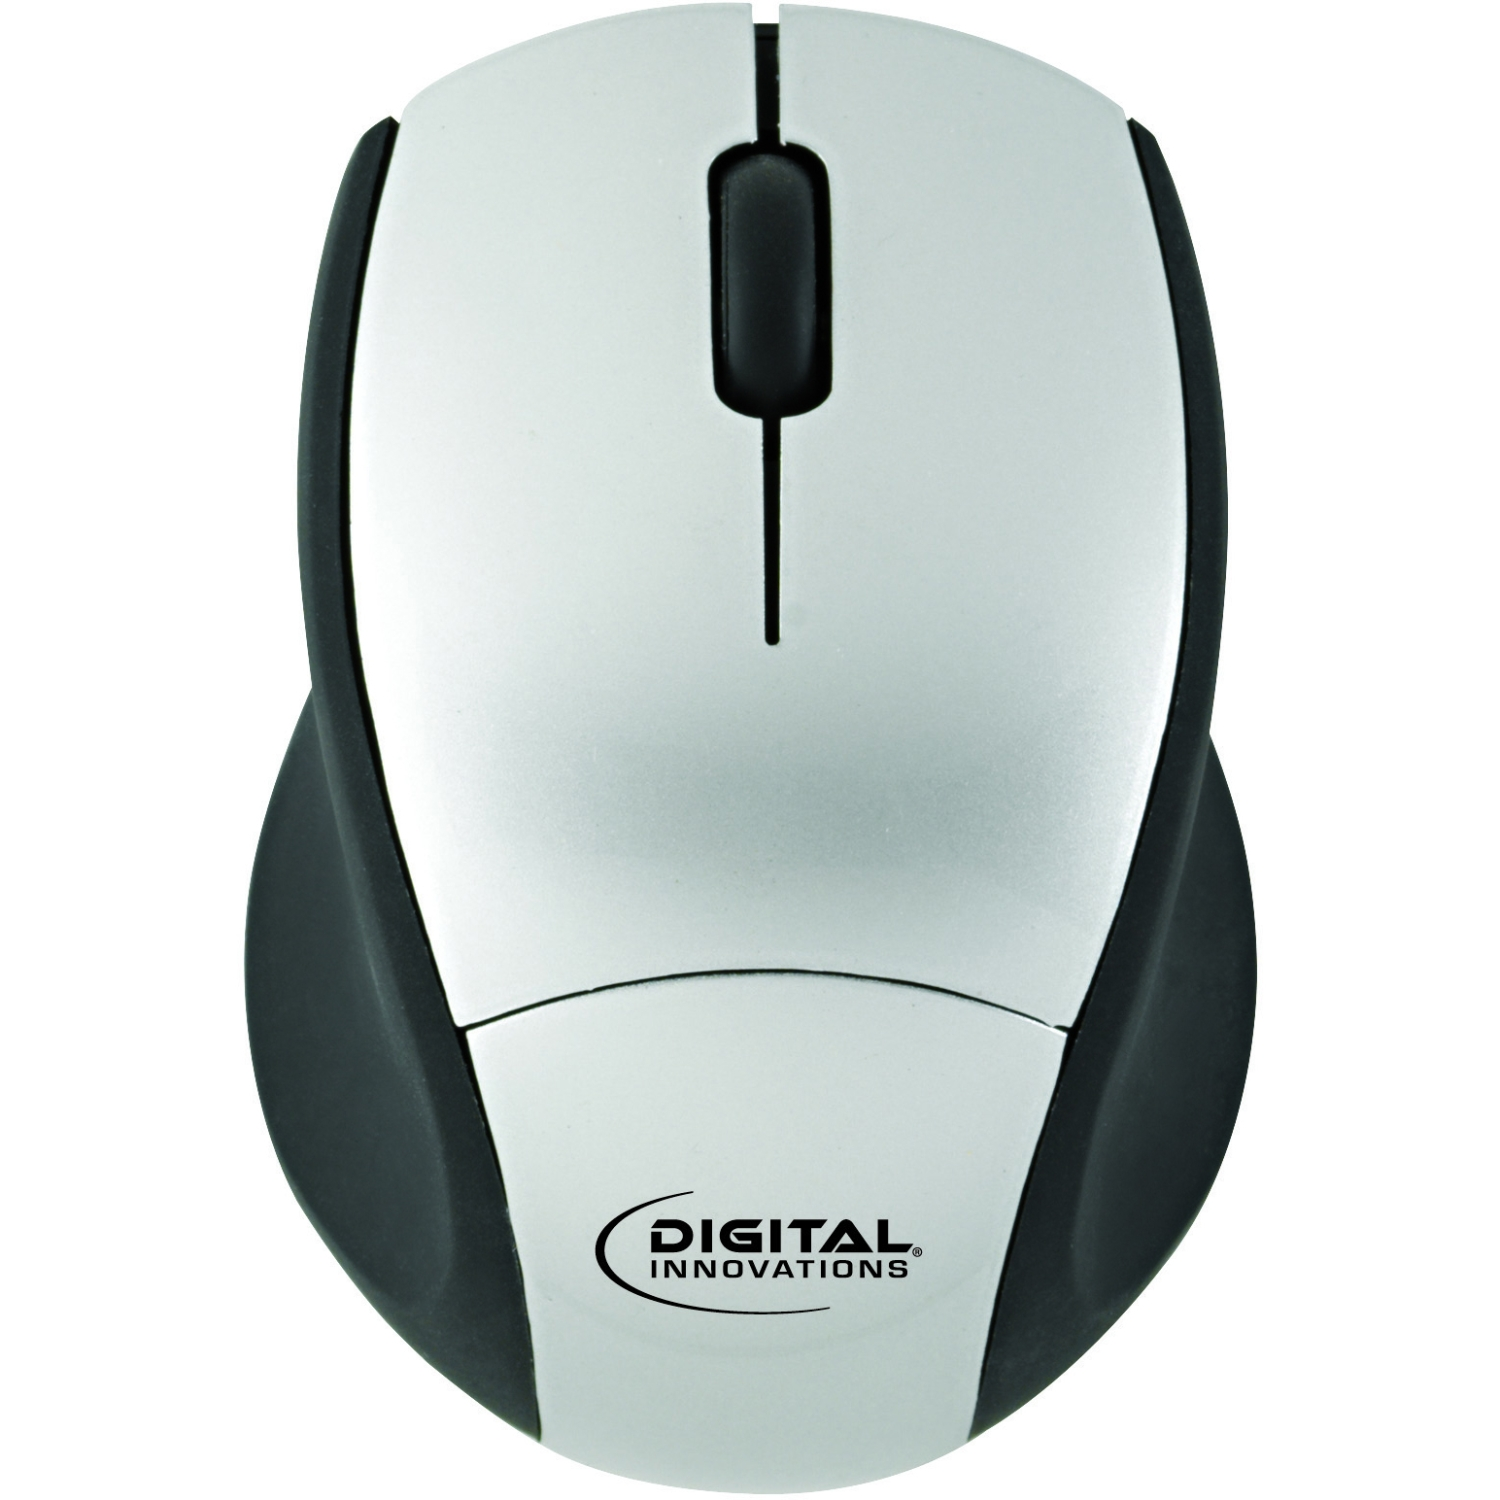 Micro Innovations EasyGlide Travel 4230100 Wireless Optical Mouse